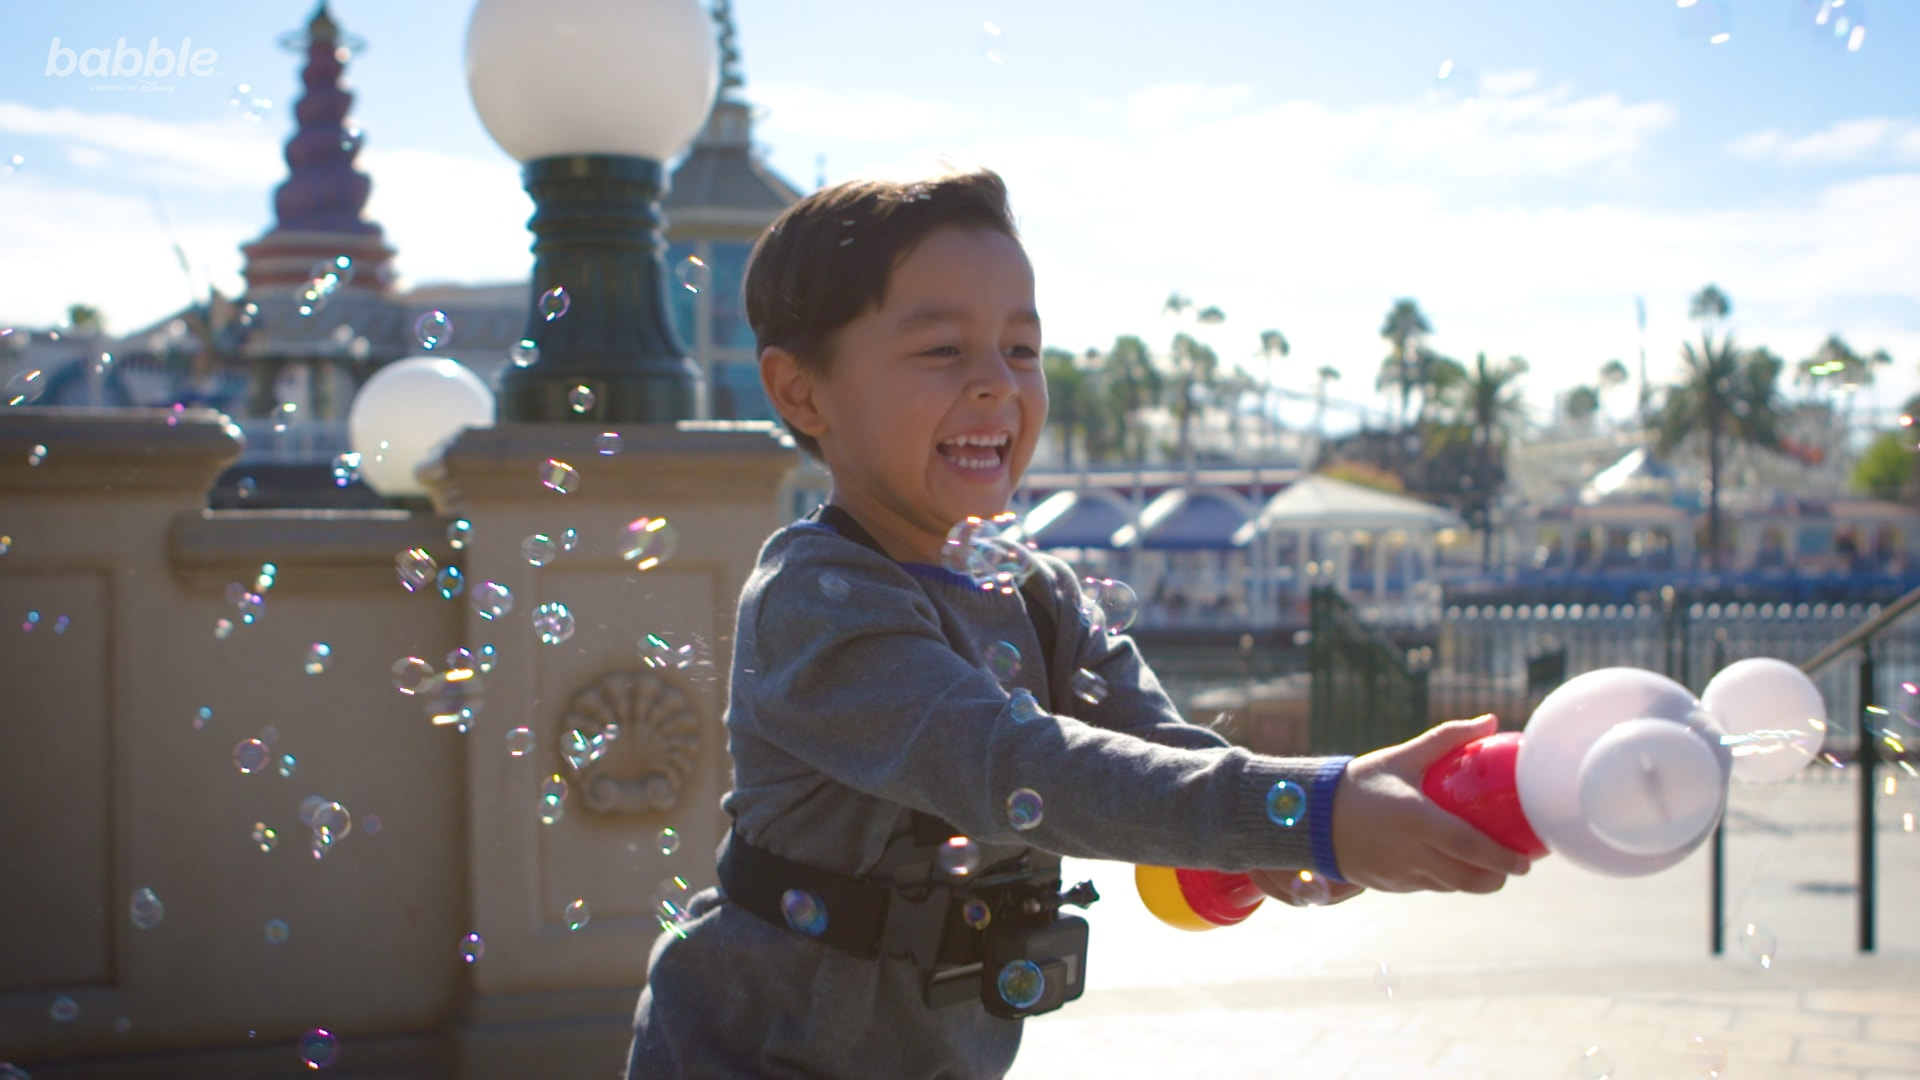 Disneyland Through the Eyes of a Child